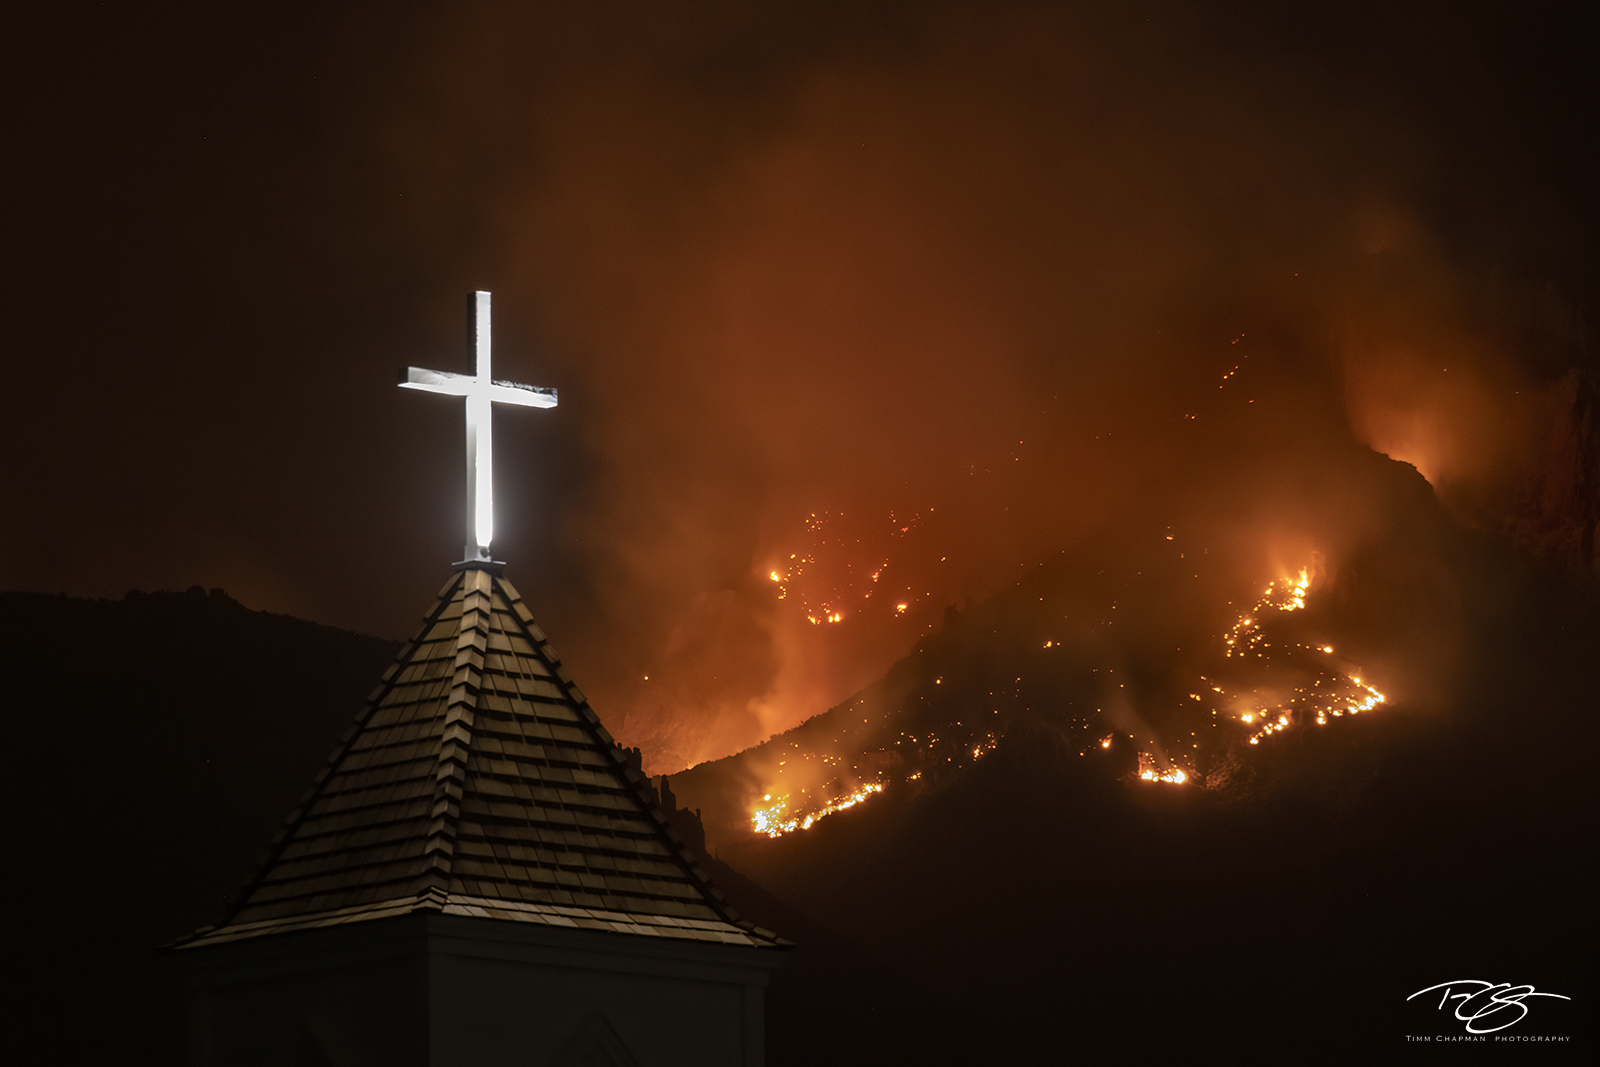 A raging forest fire on Superstition Mountain contrasts with the glowing cross from a nearby Chapel